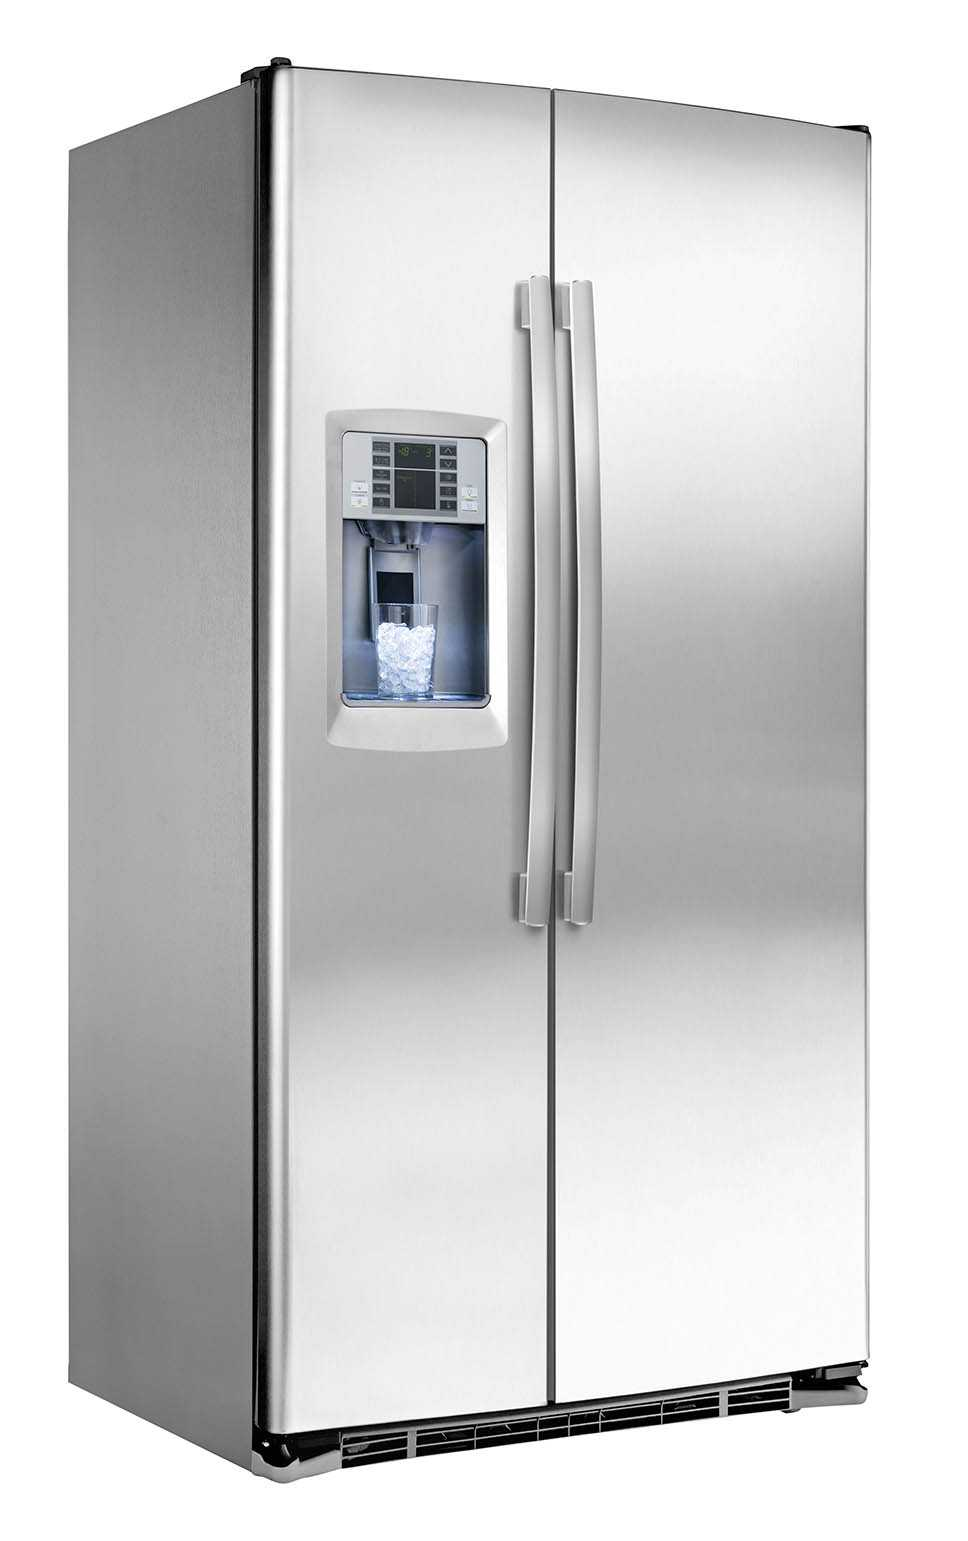 Soldes refrigerateur americain